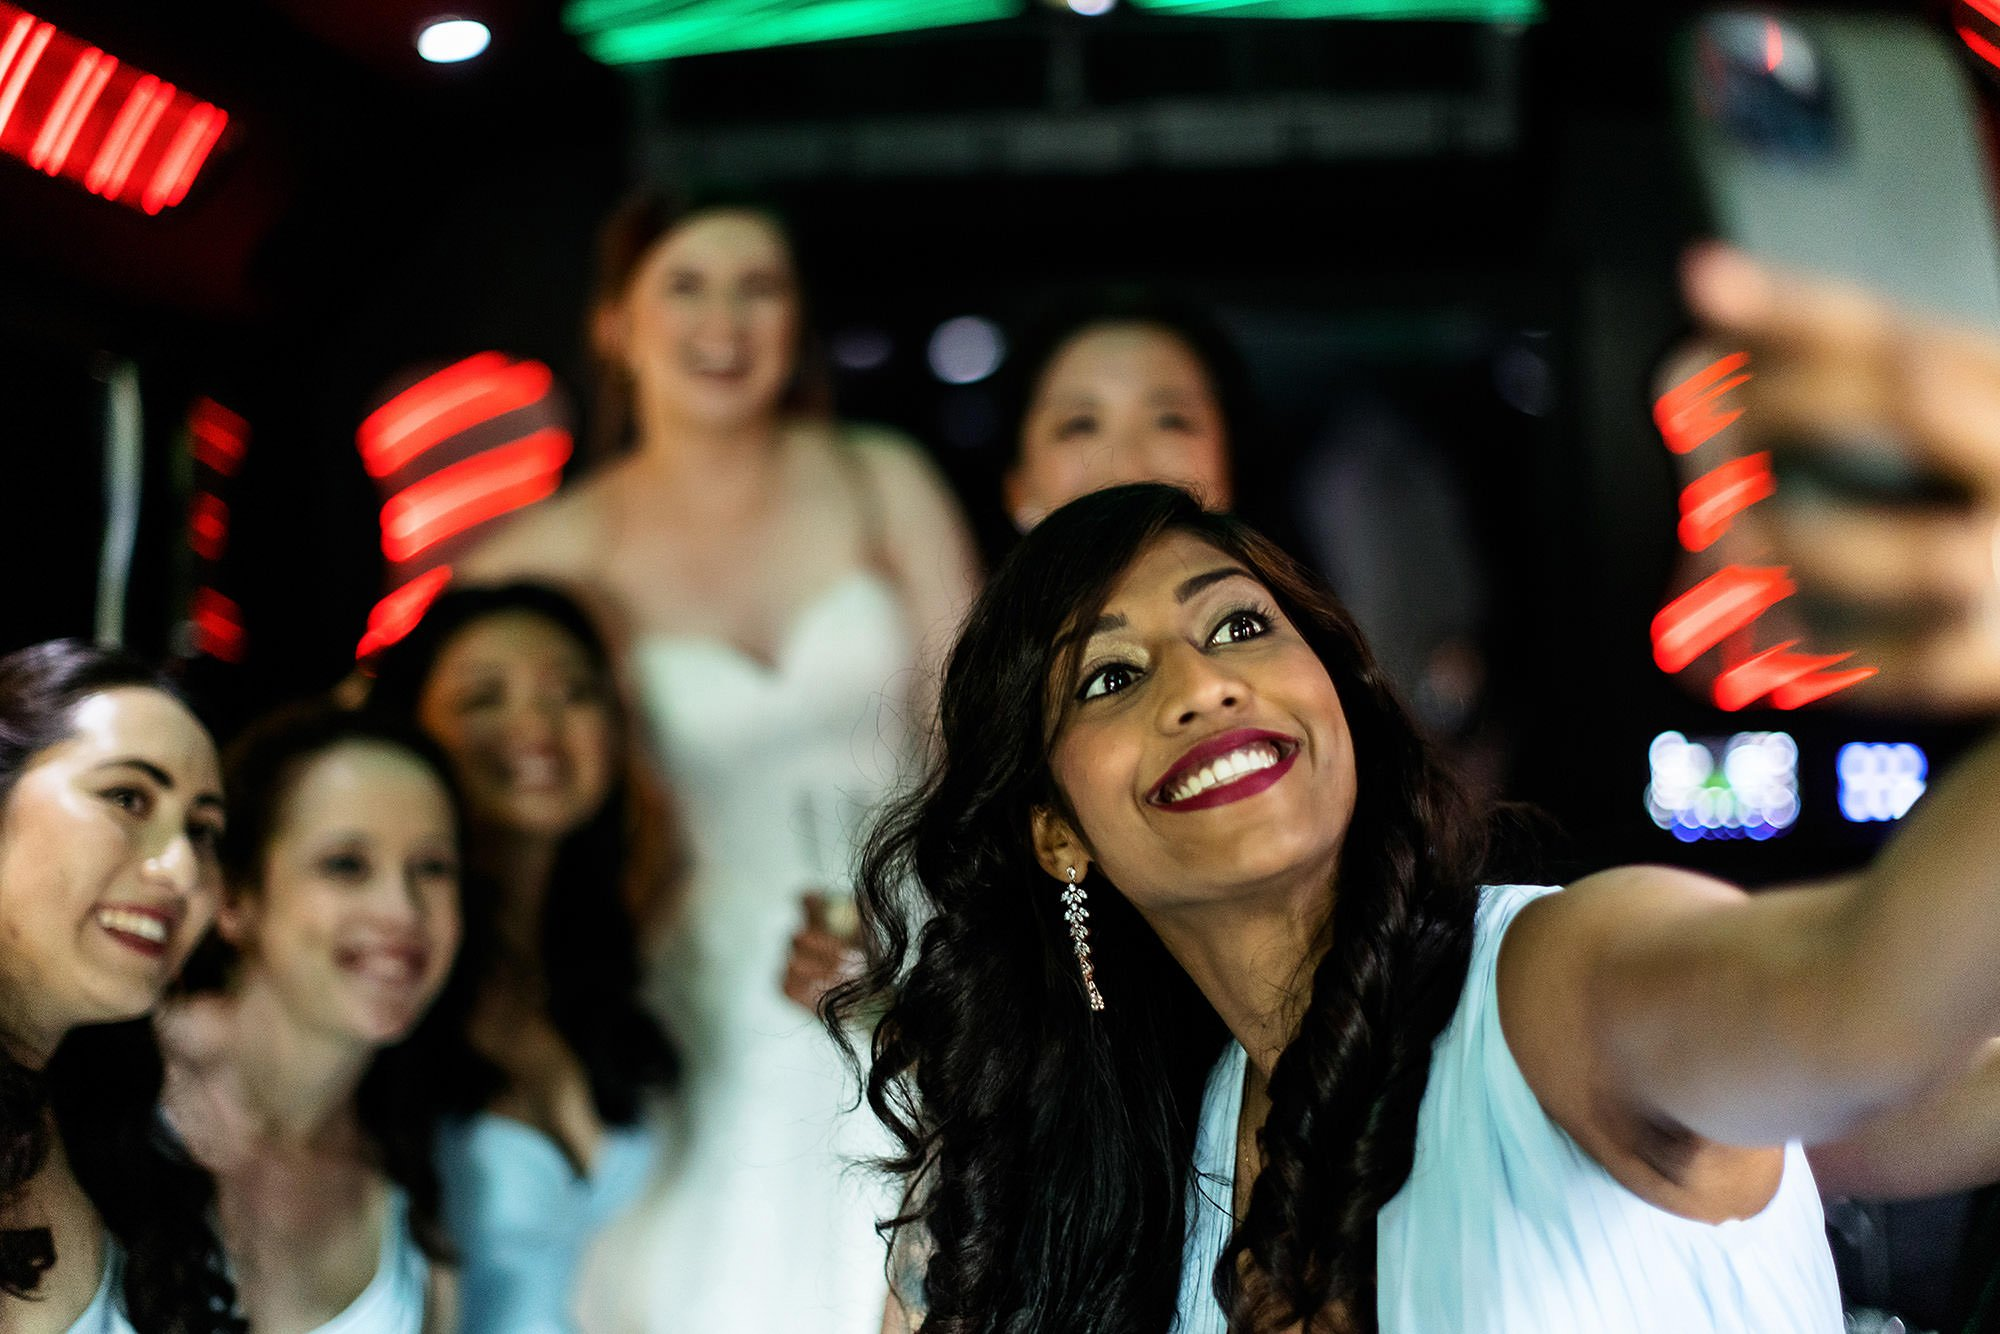 White Cliffs Country Club Wedding  I  The bridal party takes a selfie on a bus as they head to the ceremony site.